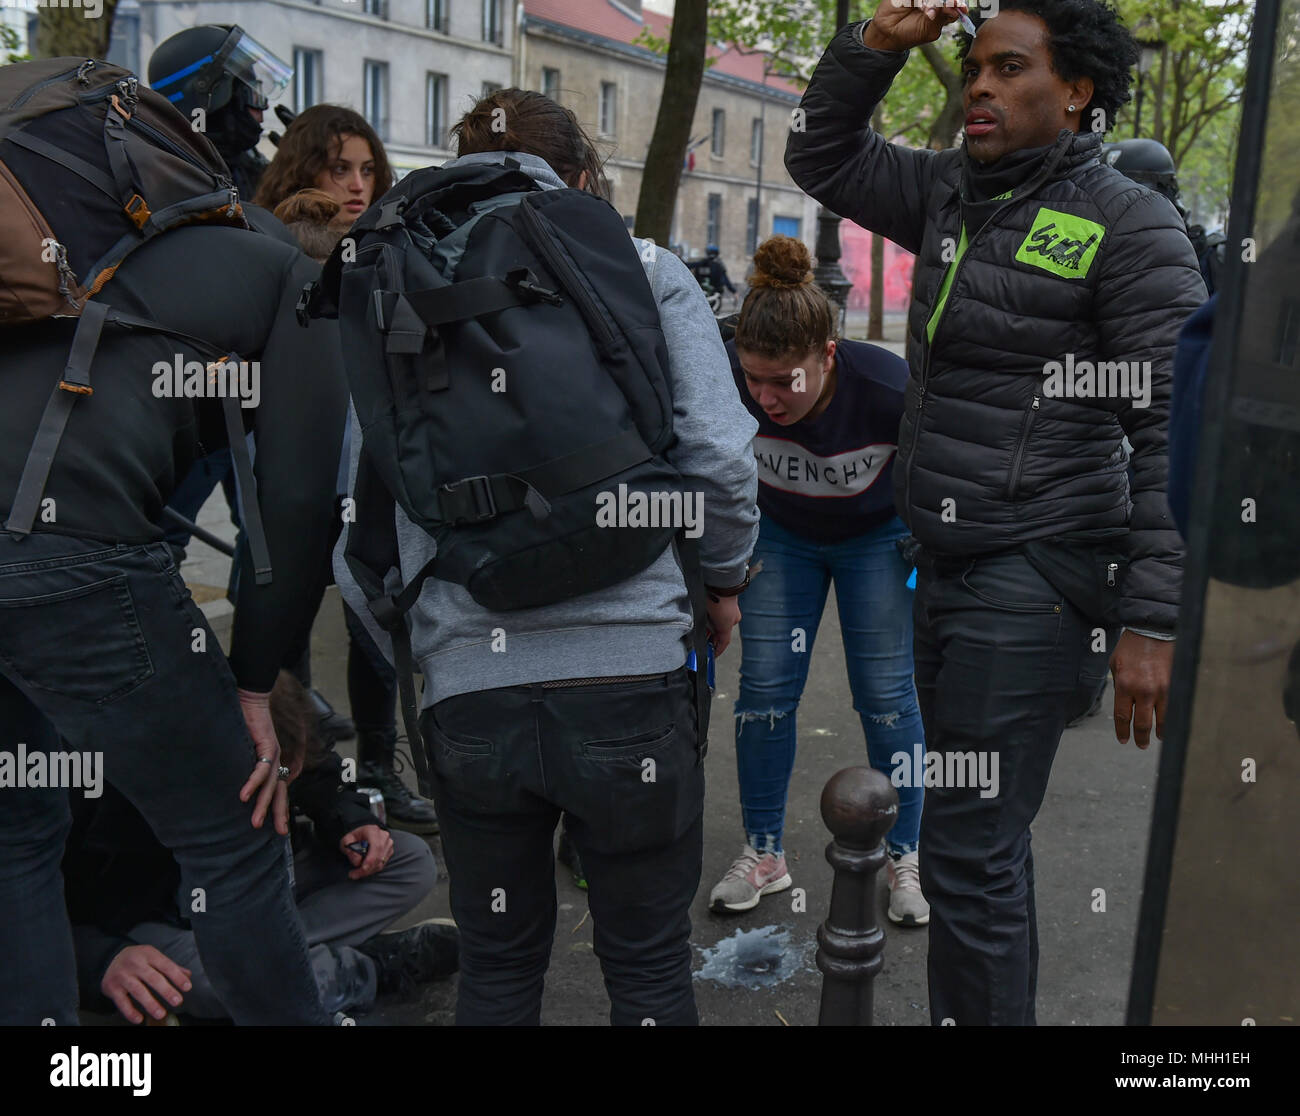 Paris, France. 1st May 2018. Paris police clash with protesters as demonstrations turn violent. PICTURED: A several people vomit after being pepper sprayed by police. Credit: Peter Manning/Alamy Live News - Stock Image